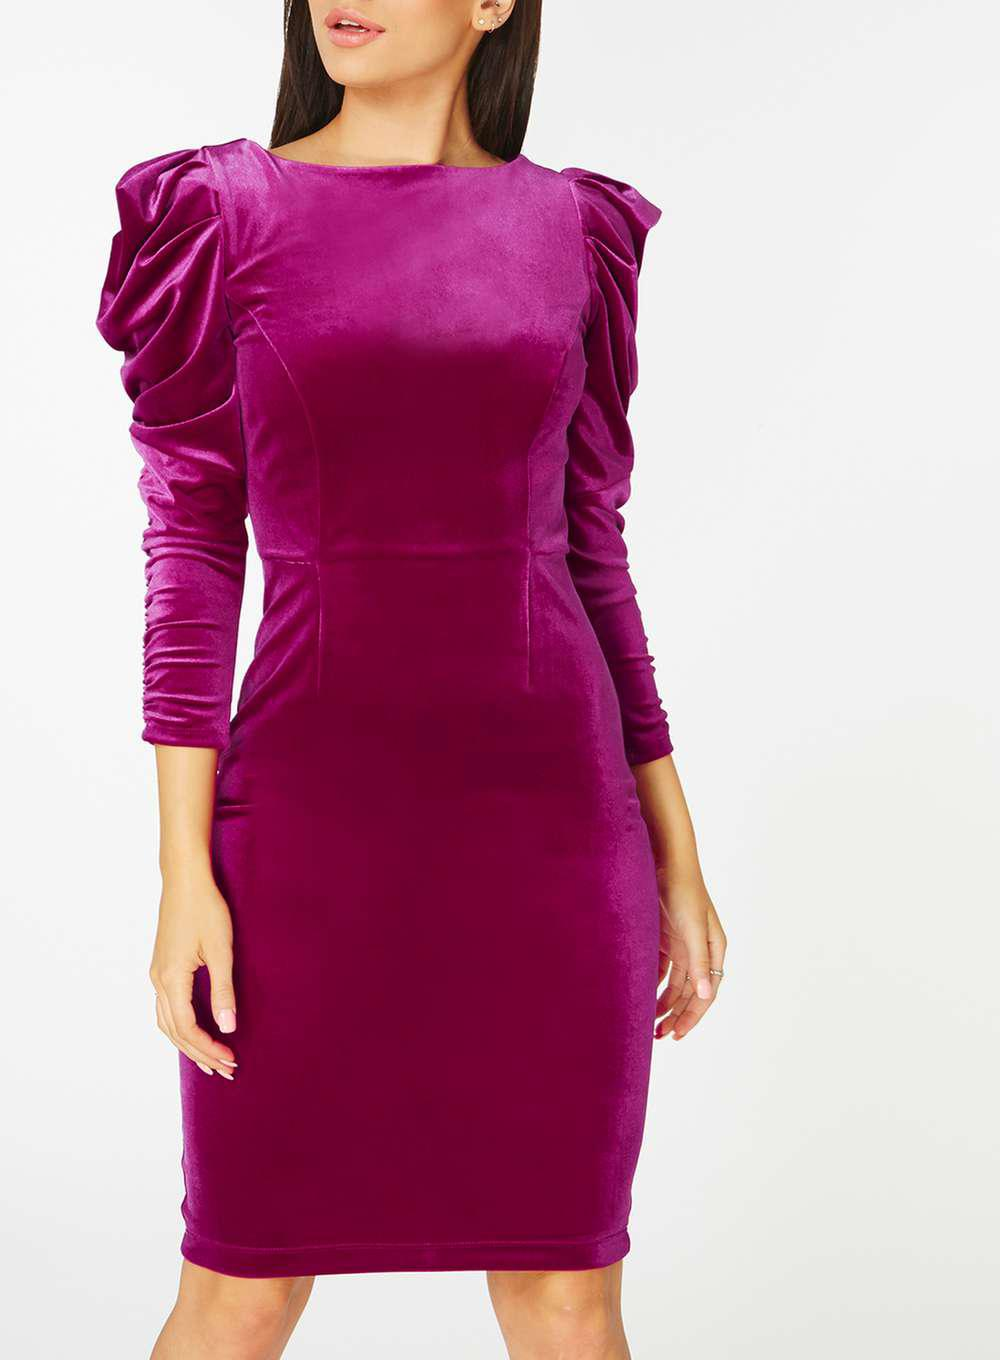 782ede084e7 Lyst - Dorothy Perkins Velvet Rouched Sleeve Bodycon Dress in Pink